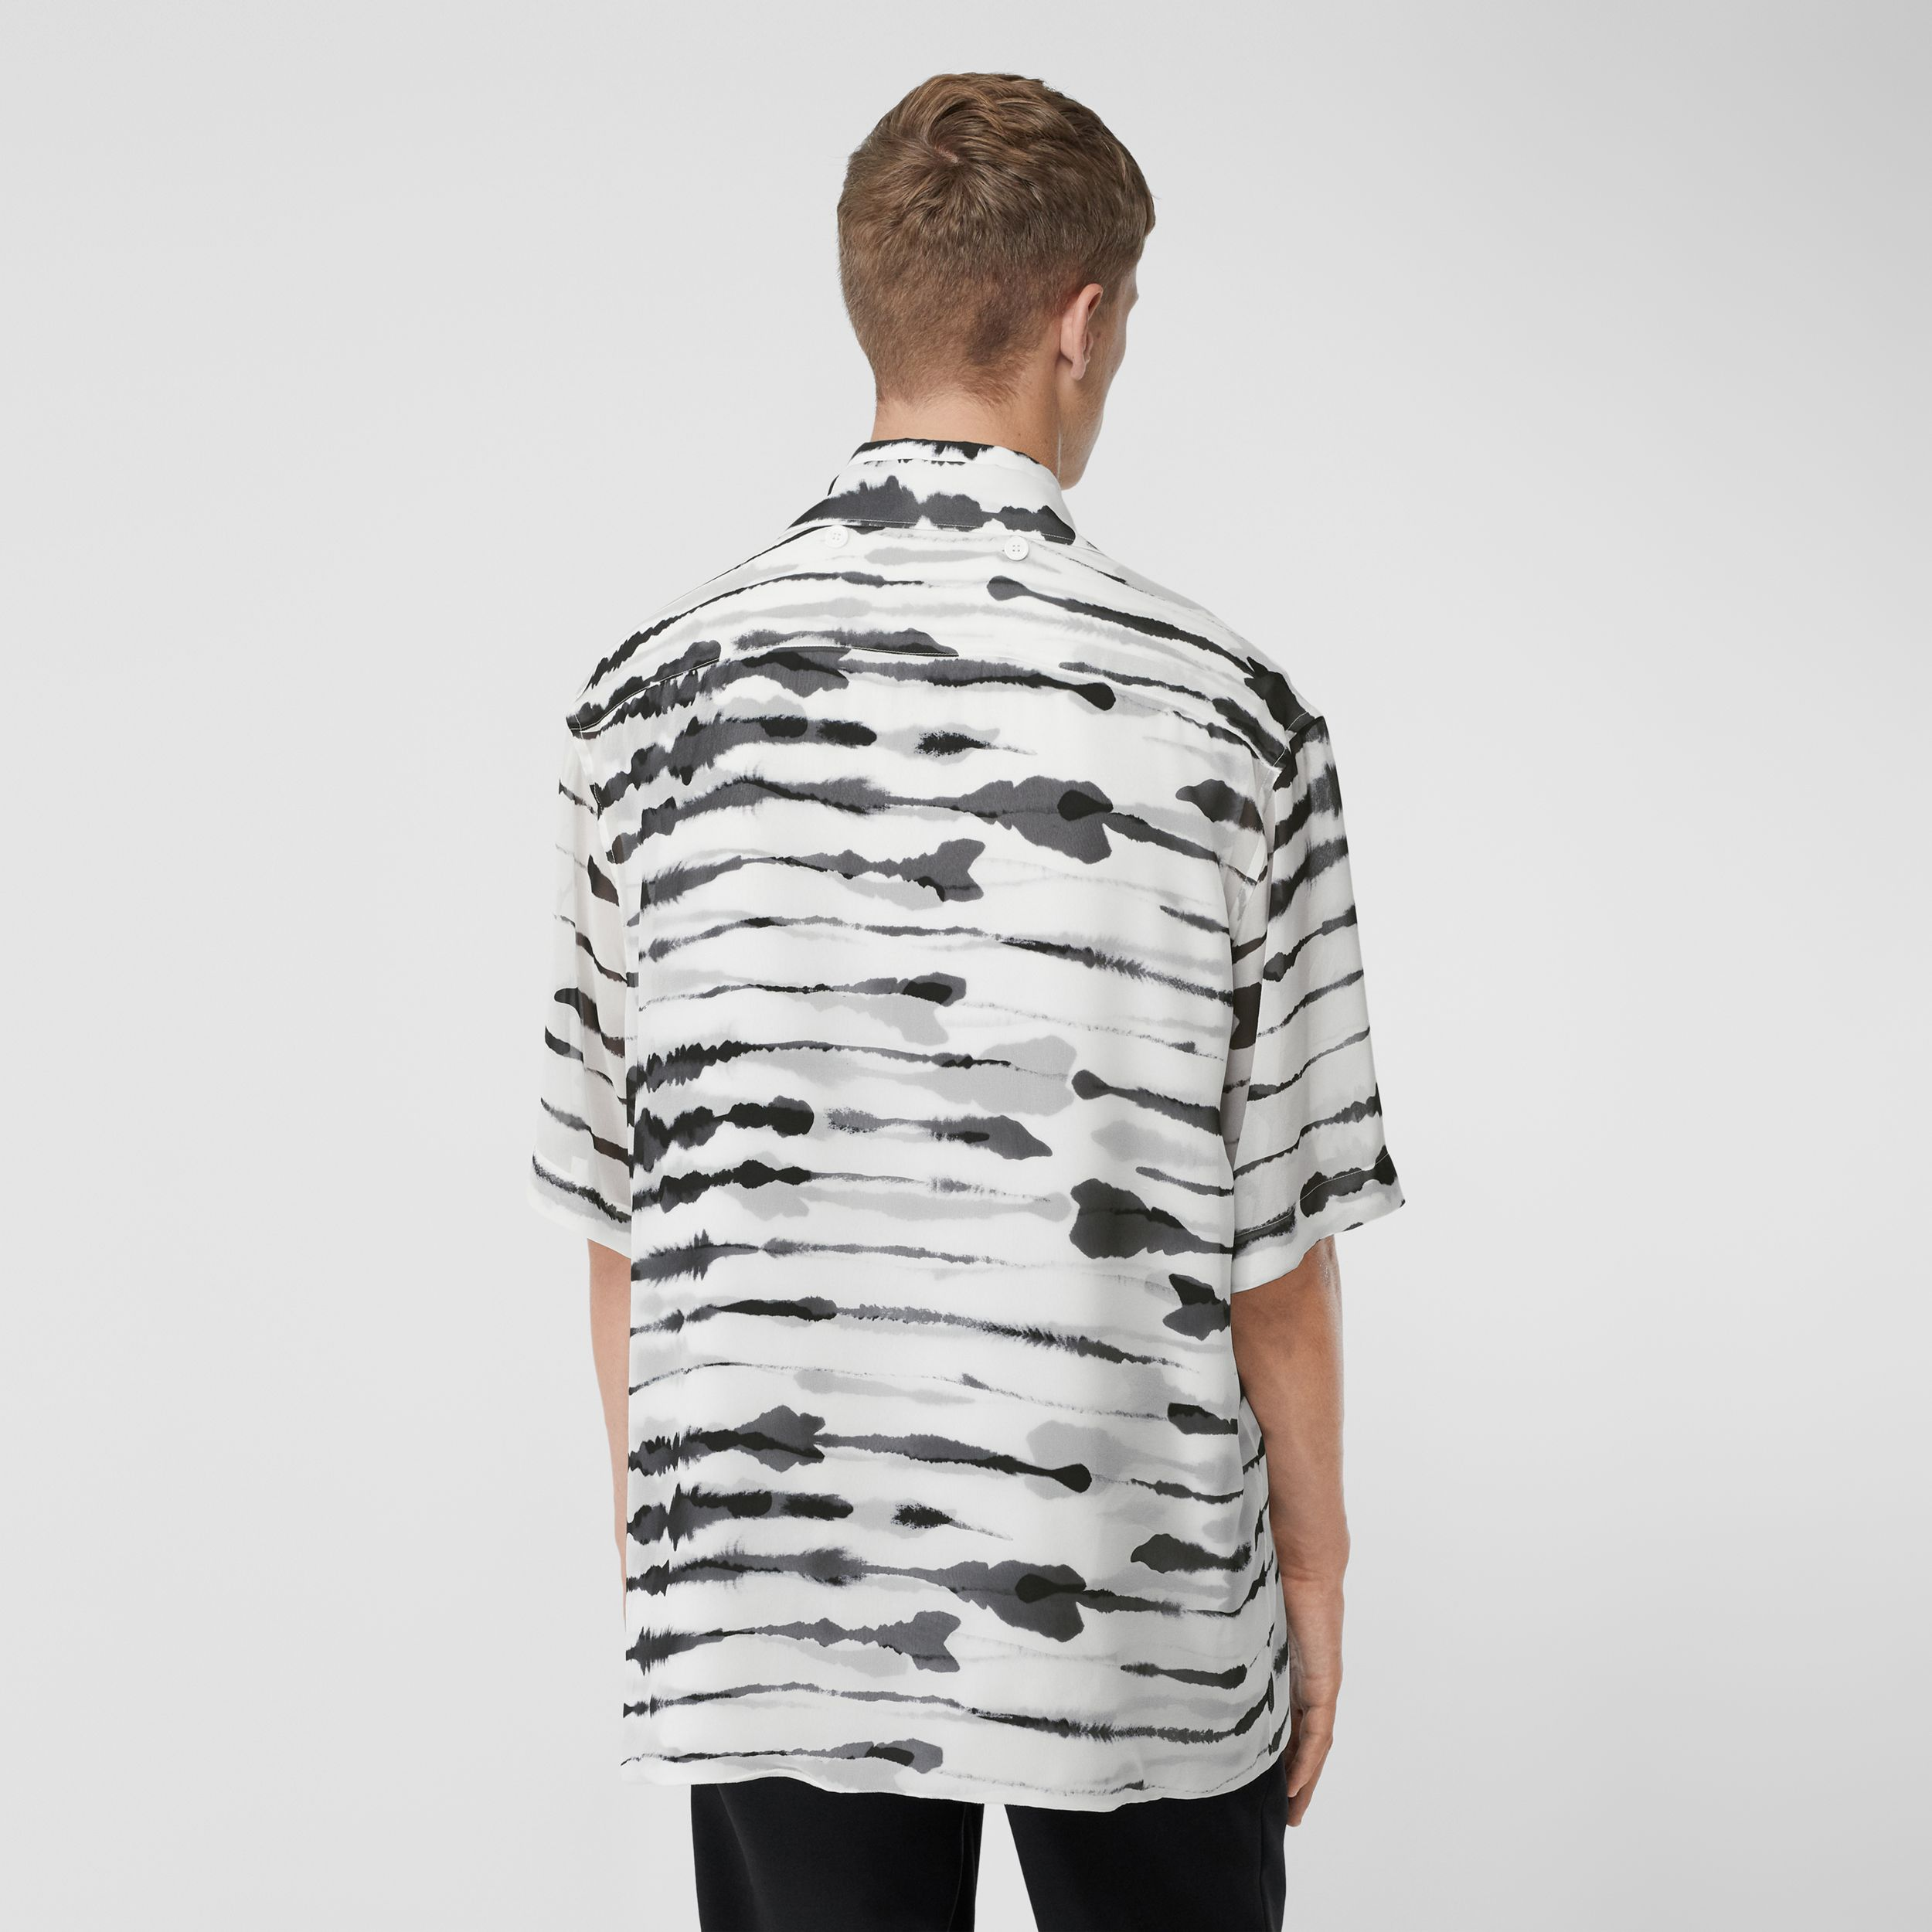 Short-sleeve Silk Overlay Watercolour Print Twill Shirt in Monochrome - Men | Burberry - 3